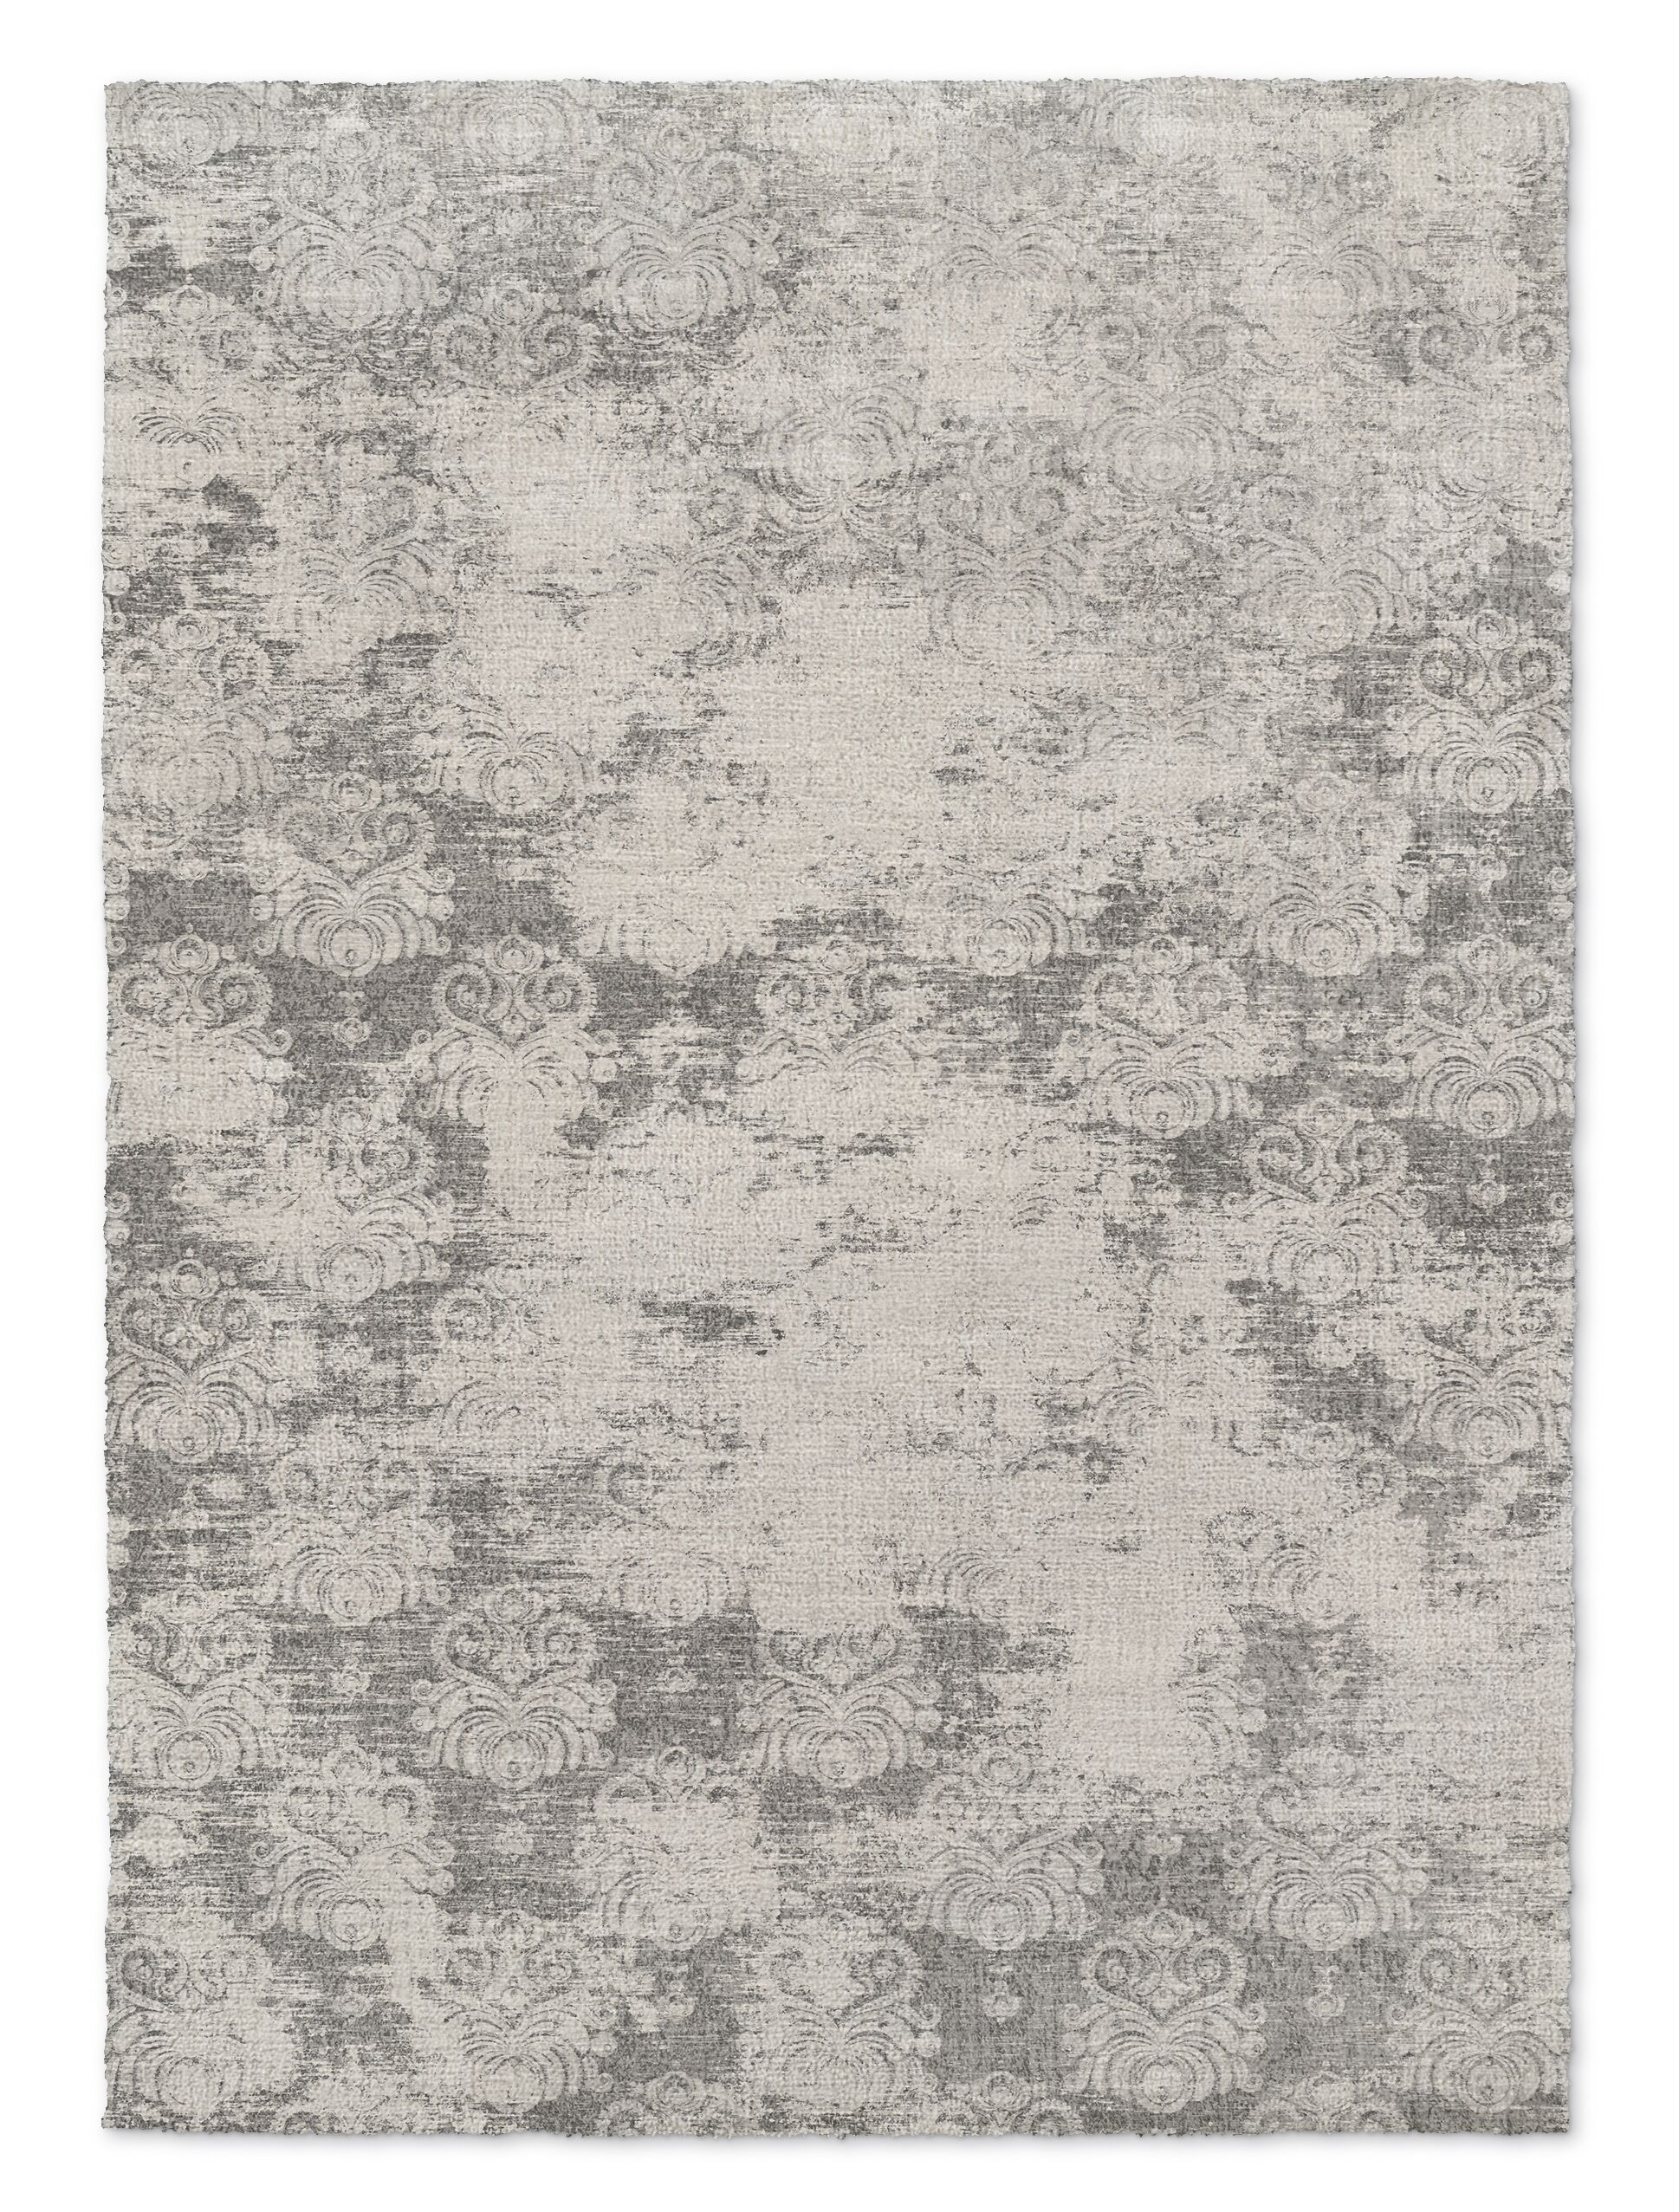 Victoire Gray Area Rug Rug Size: Rectangle 2' x 3'